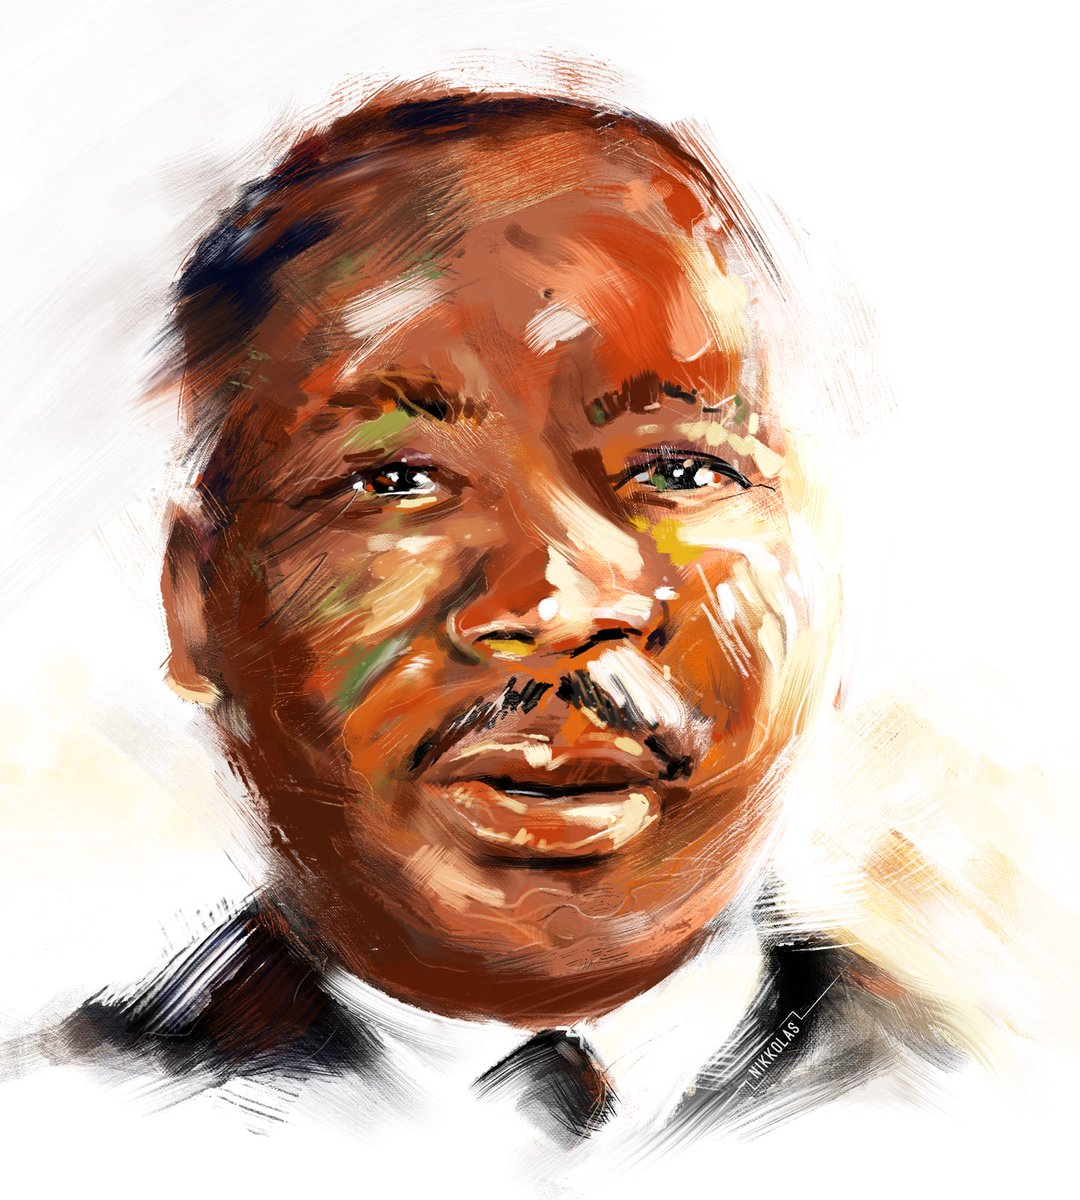 """""""Whatever affects one directly, affects all indirectly. I can never be what I ought to be until you are what you ought to be. This is the interrelated structure of reality."""" — Martin Luther King, Jr.  Art by Entrepreneur and HBCU alum Nikkolas Smith"""